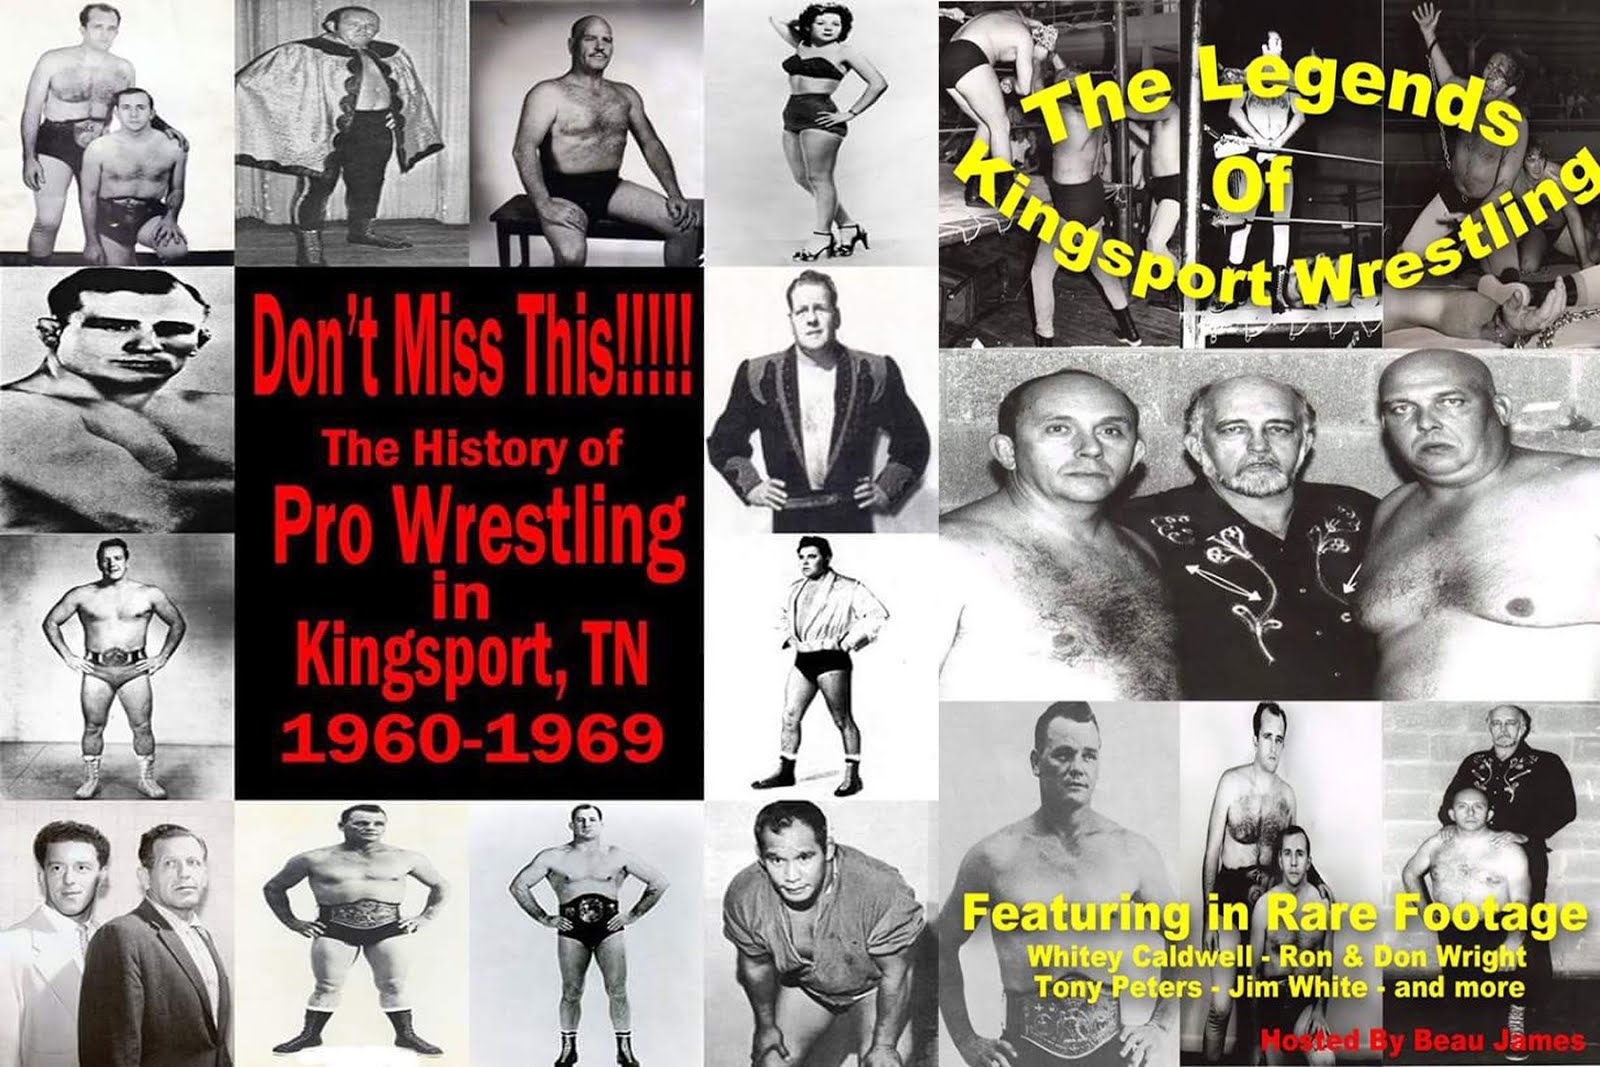 Don't Miss This!!! Legends of Kingsport DVD